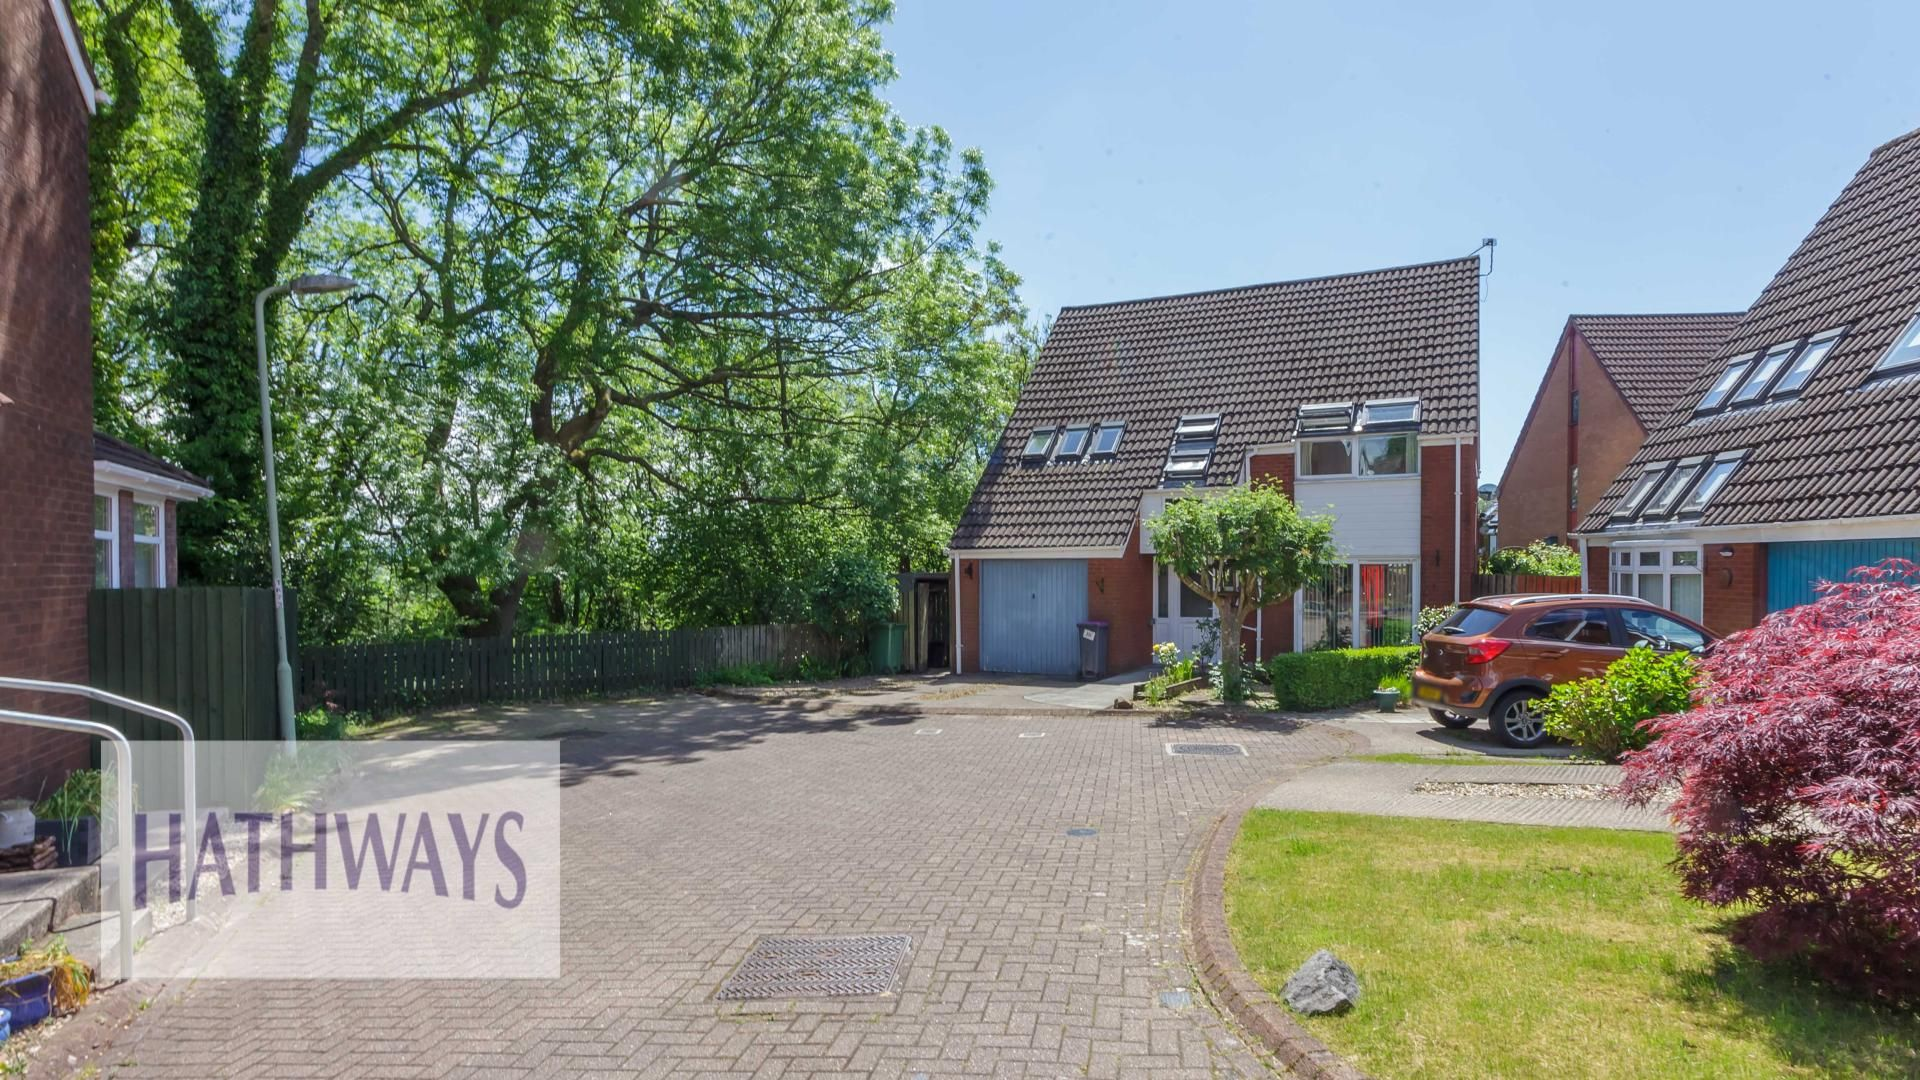 5 bed house for sale in Five Locks Close, NP44